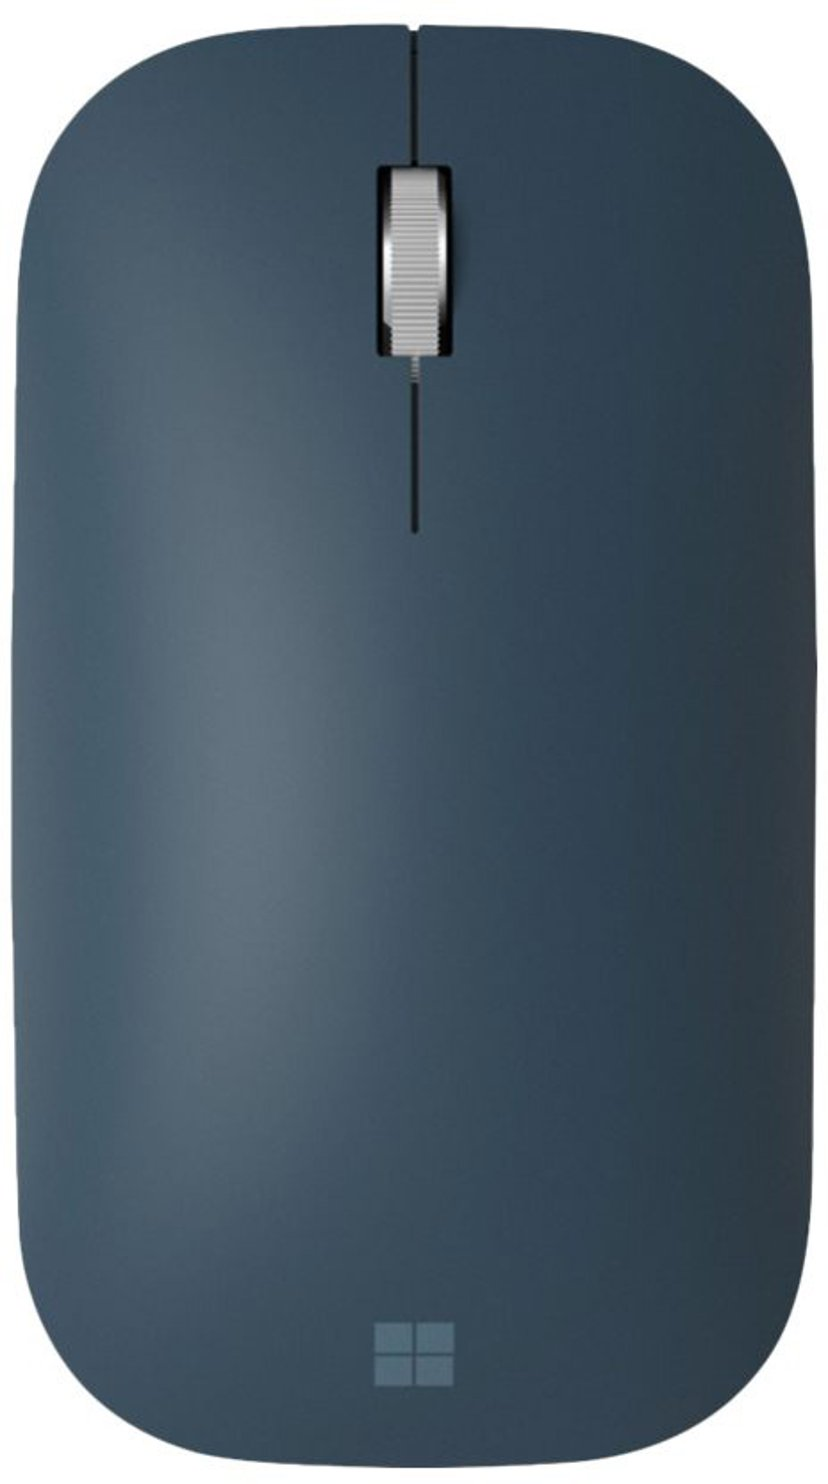 Microsoft Surface Mobile Mouse Blauw Muis Draadloos